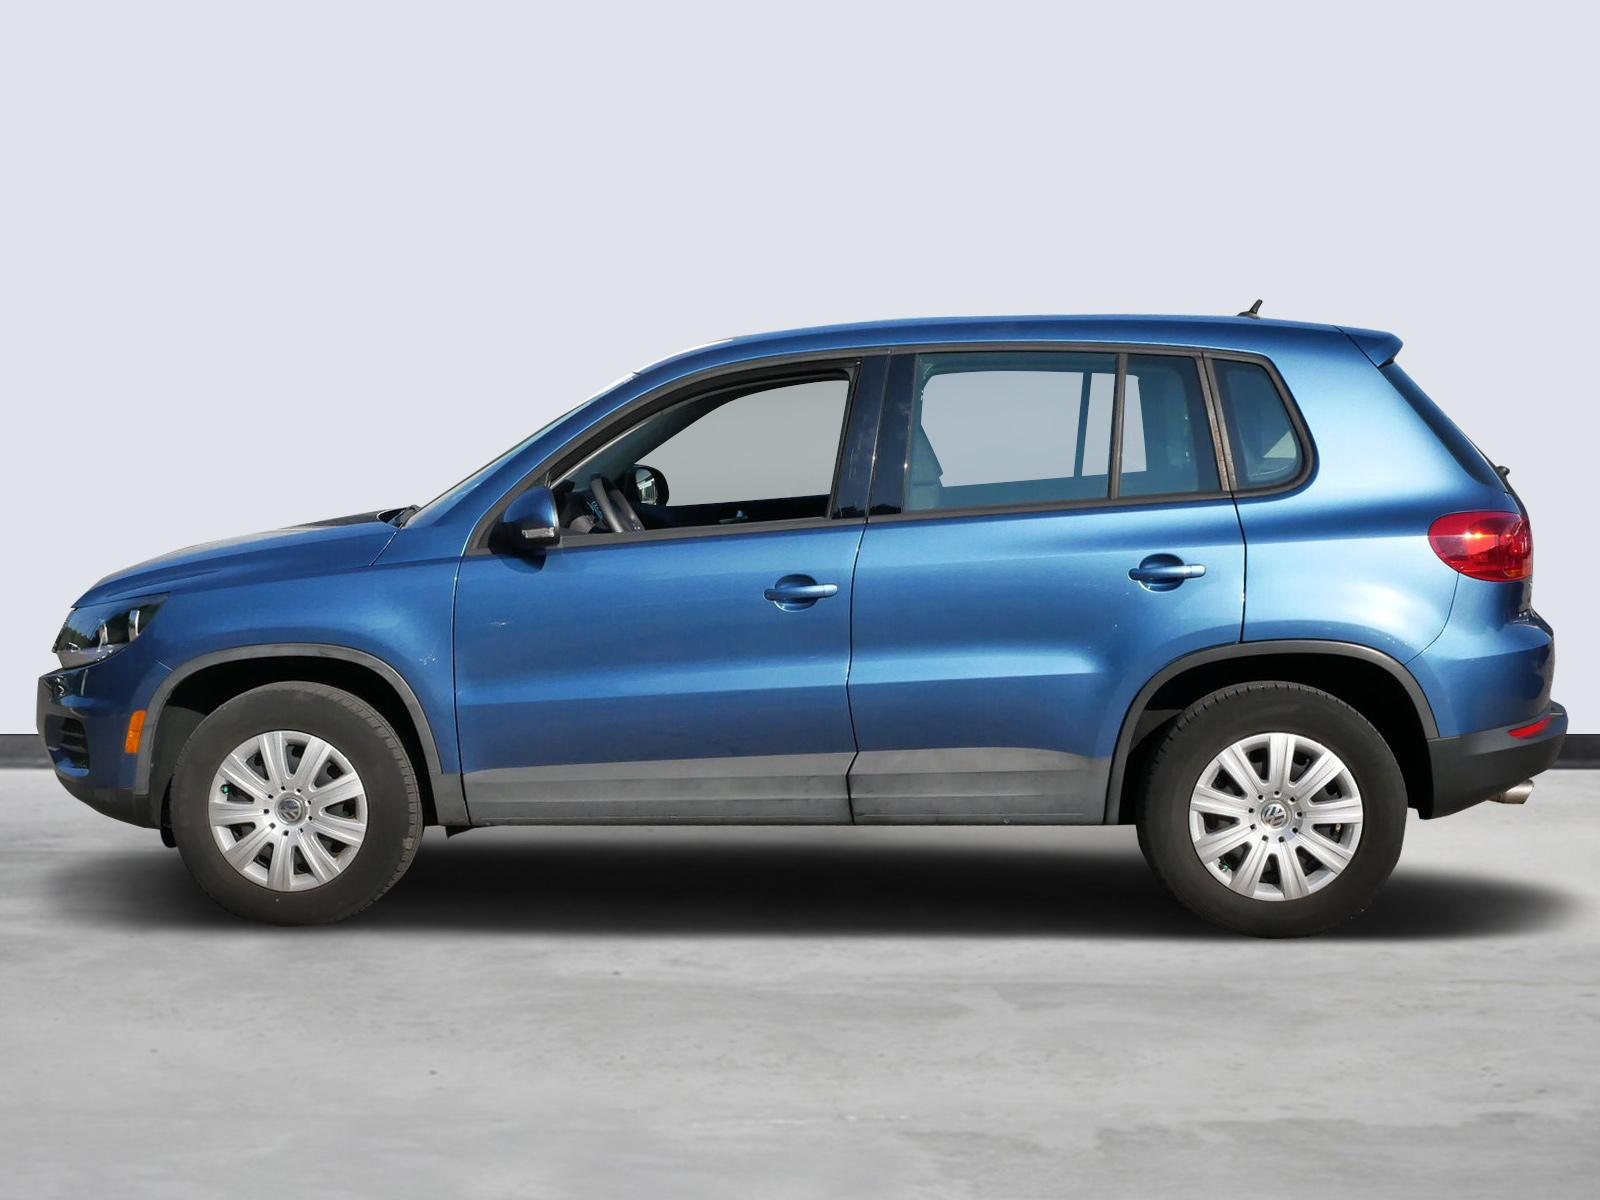 Used 2018 Volkswagen Tiguan Limited  with VIN WVGBV7AX5JK004674 for sale in Minneapolis, Minnesota